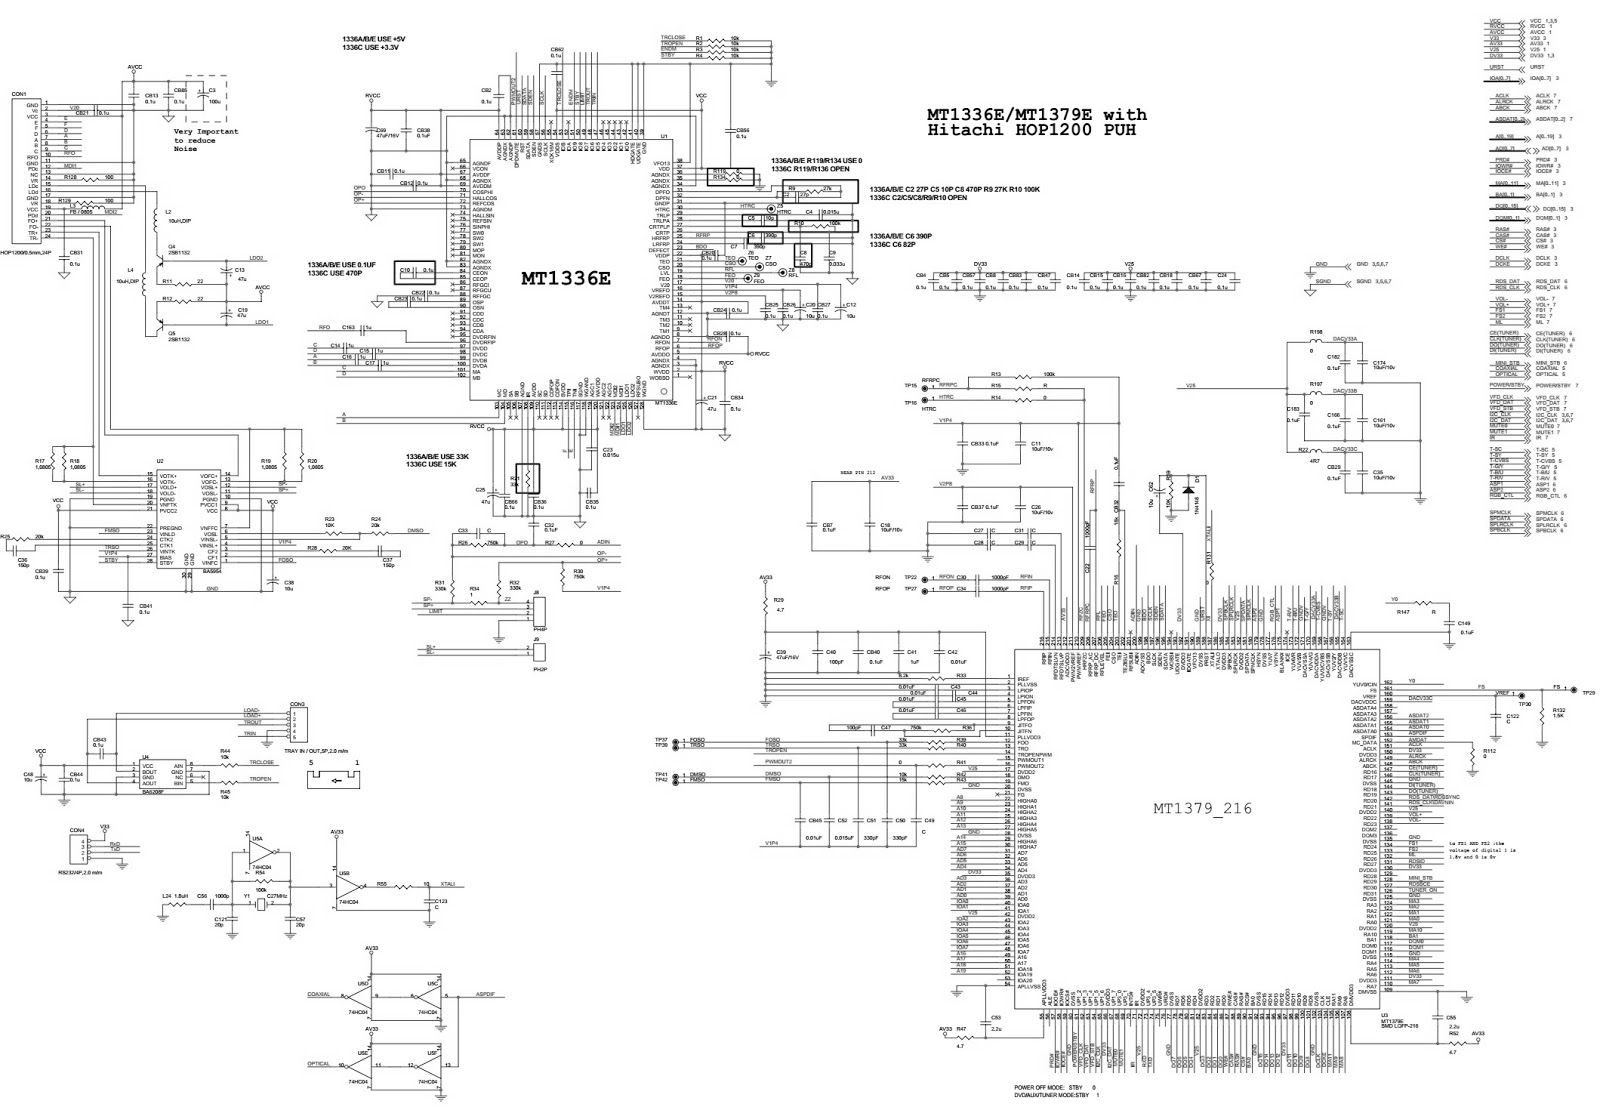 Akai HTCS01T DVD HOME THEATER SYSTEM  Circuit Diagram